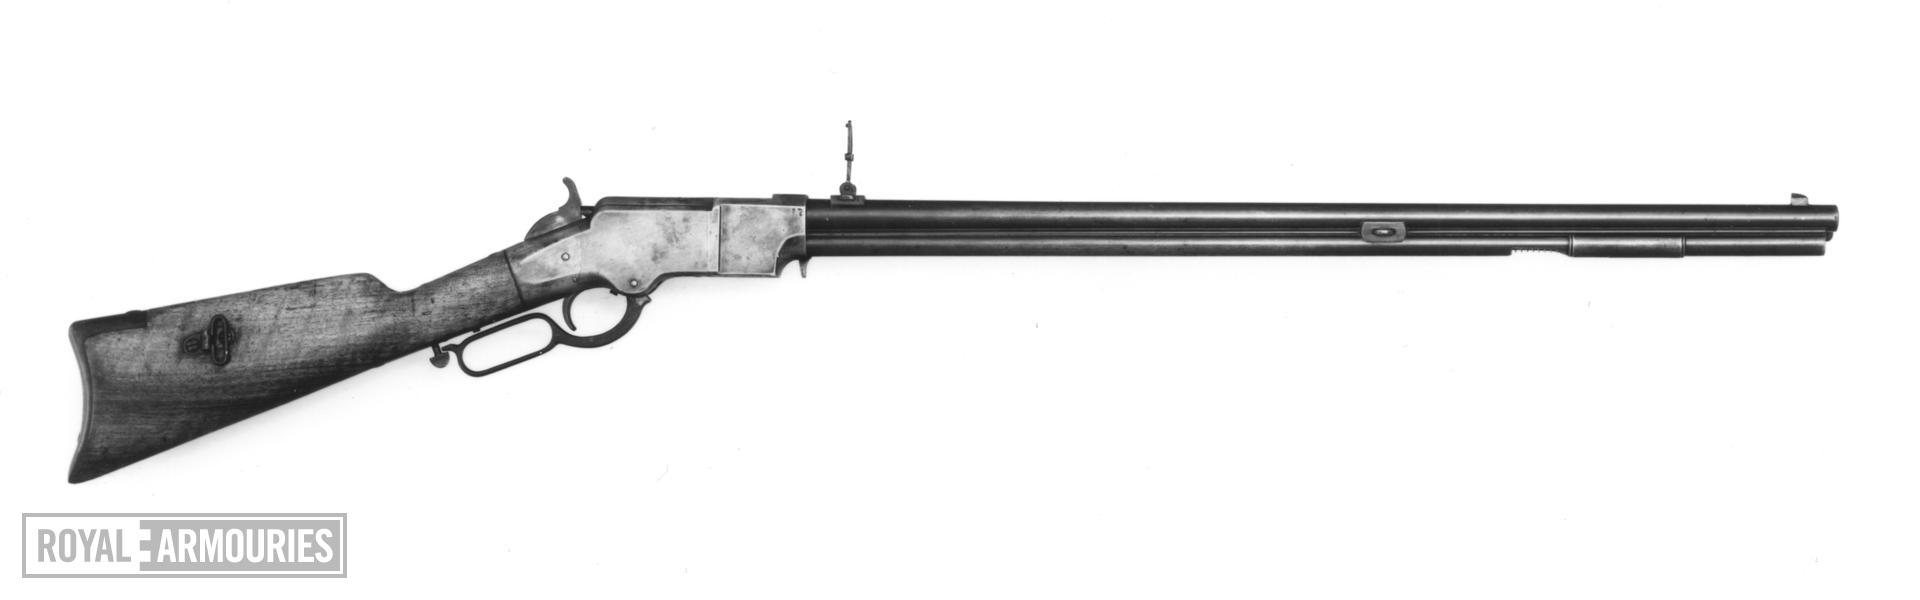 Rimfire lever-action magazine rifle Copy of a Henry Rifle